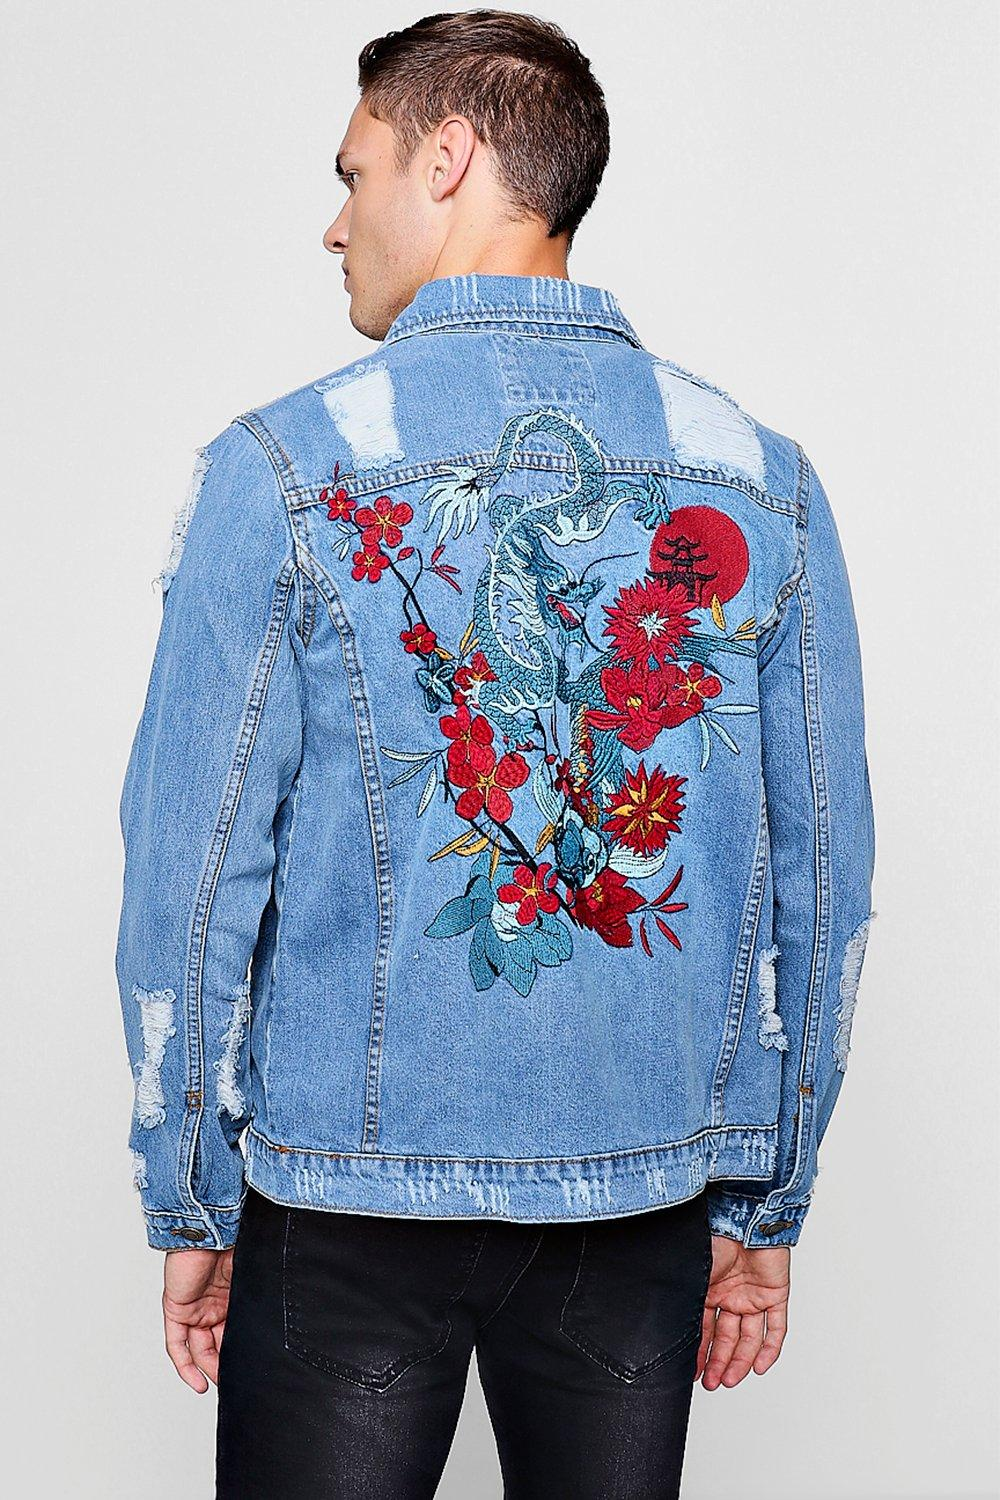 a580324298 Dragon Embroidery Distressed Denim Jacket | Boohoo